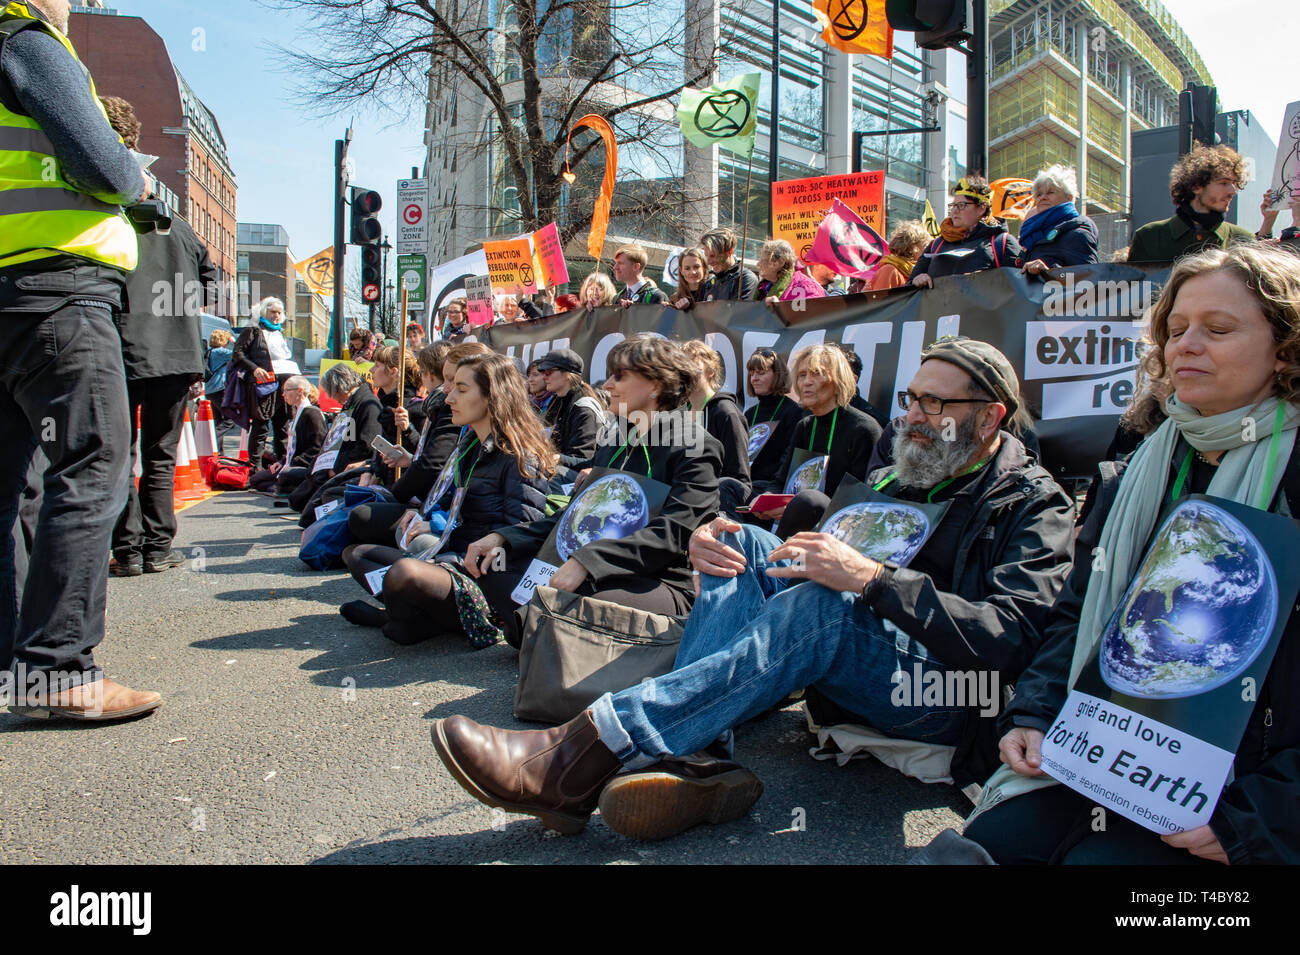 London, United Kingdom. 15 April 2019. Extinction Rebellion climate change protesters have blocked several section of Oxford Street at Marble Arch and Oxford Circus. Credit: Peter Manning/Alamy Live News Stock Photo